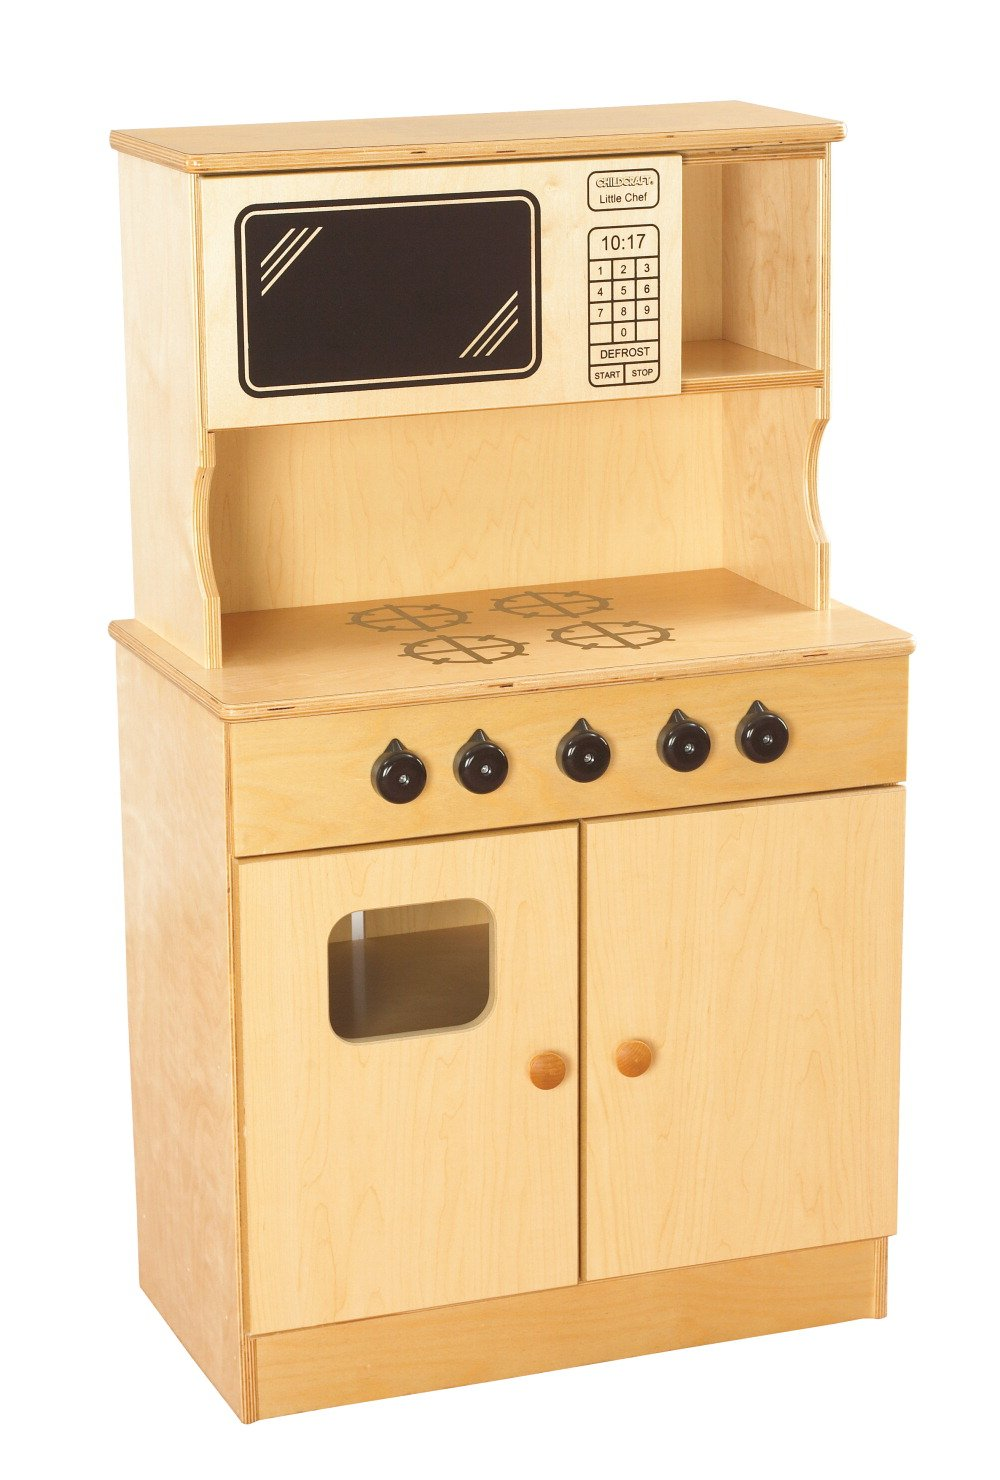 Childcraft 1464143 Stove and Microwave, Wood, 40-7/8'' x 13-3/8'' x 24'', Natural Wood Tone